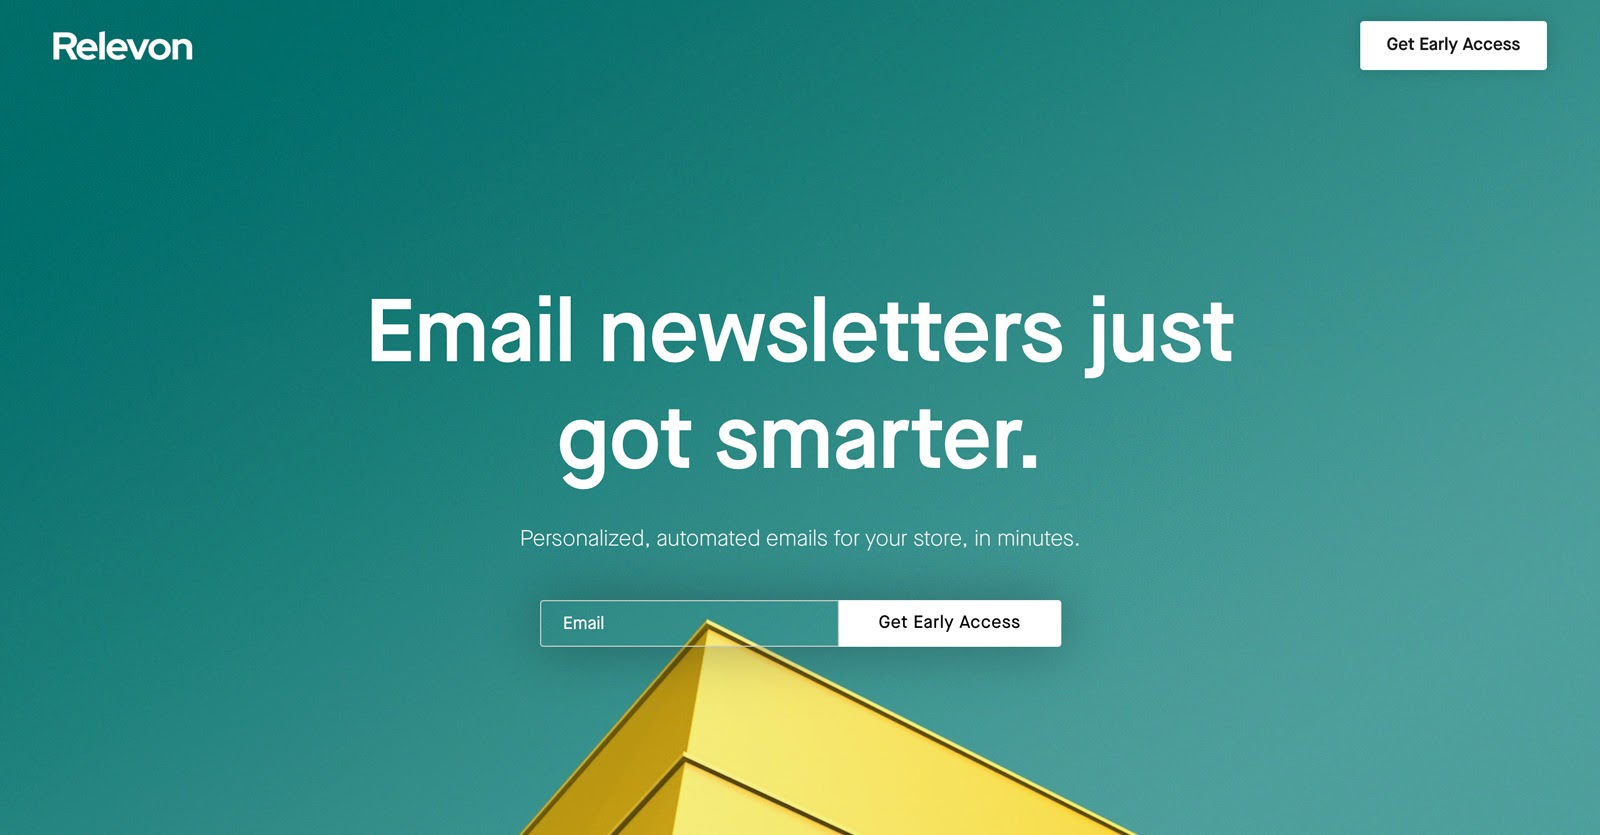 relevon email newsletters